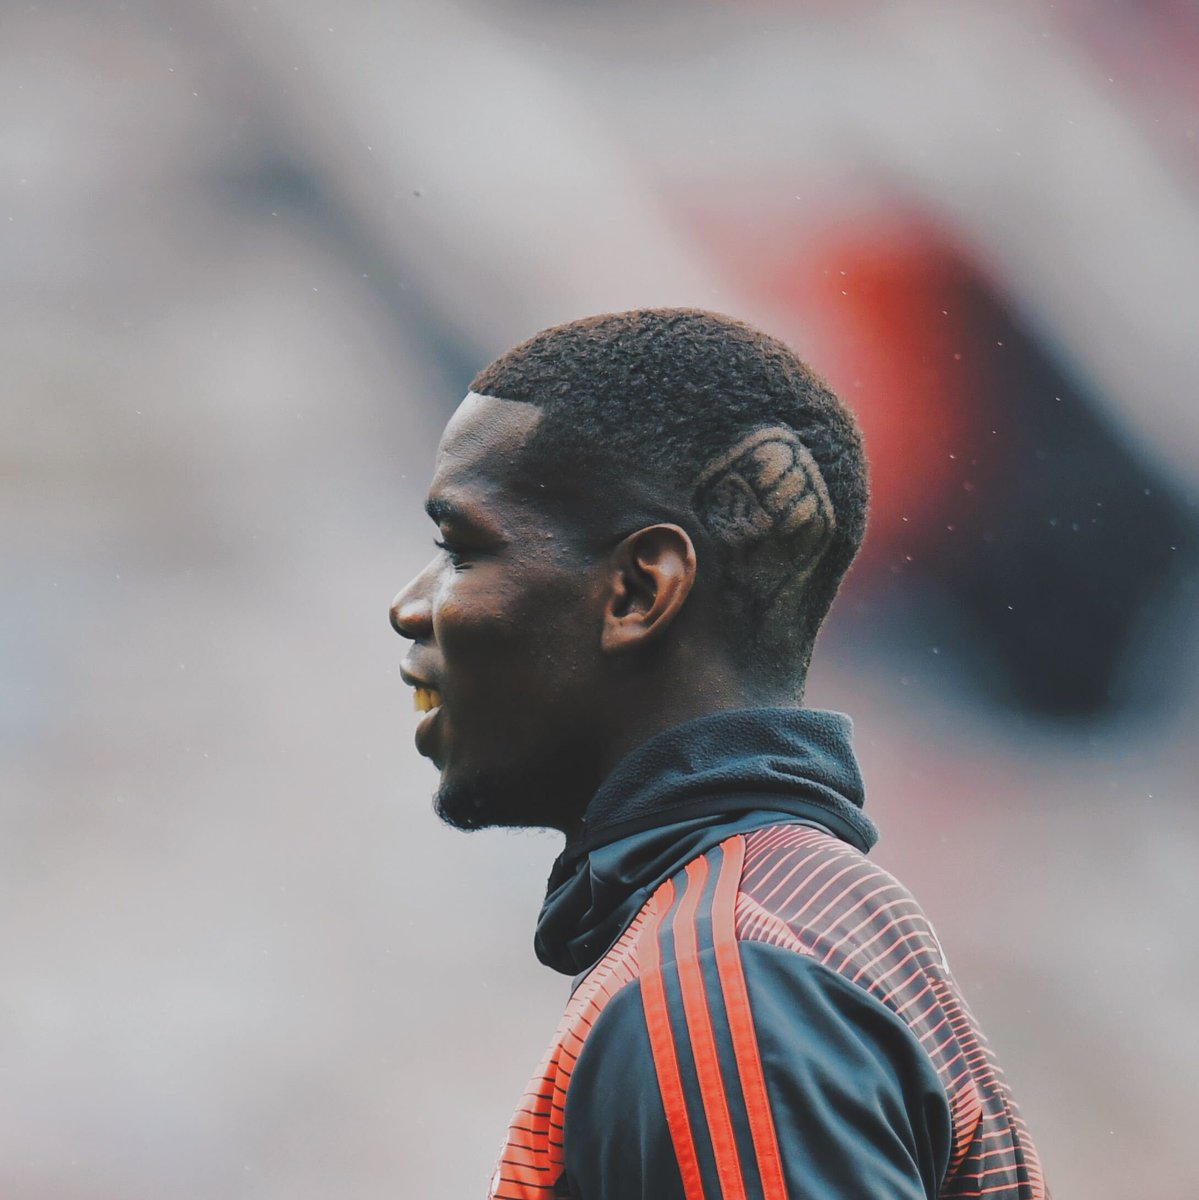 Paul Pogba's new haircut is repping the Black Lives Matter movement